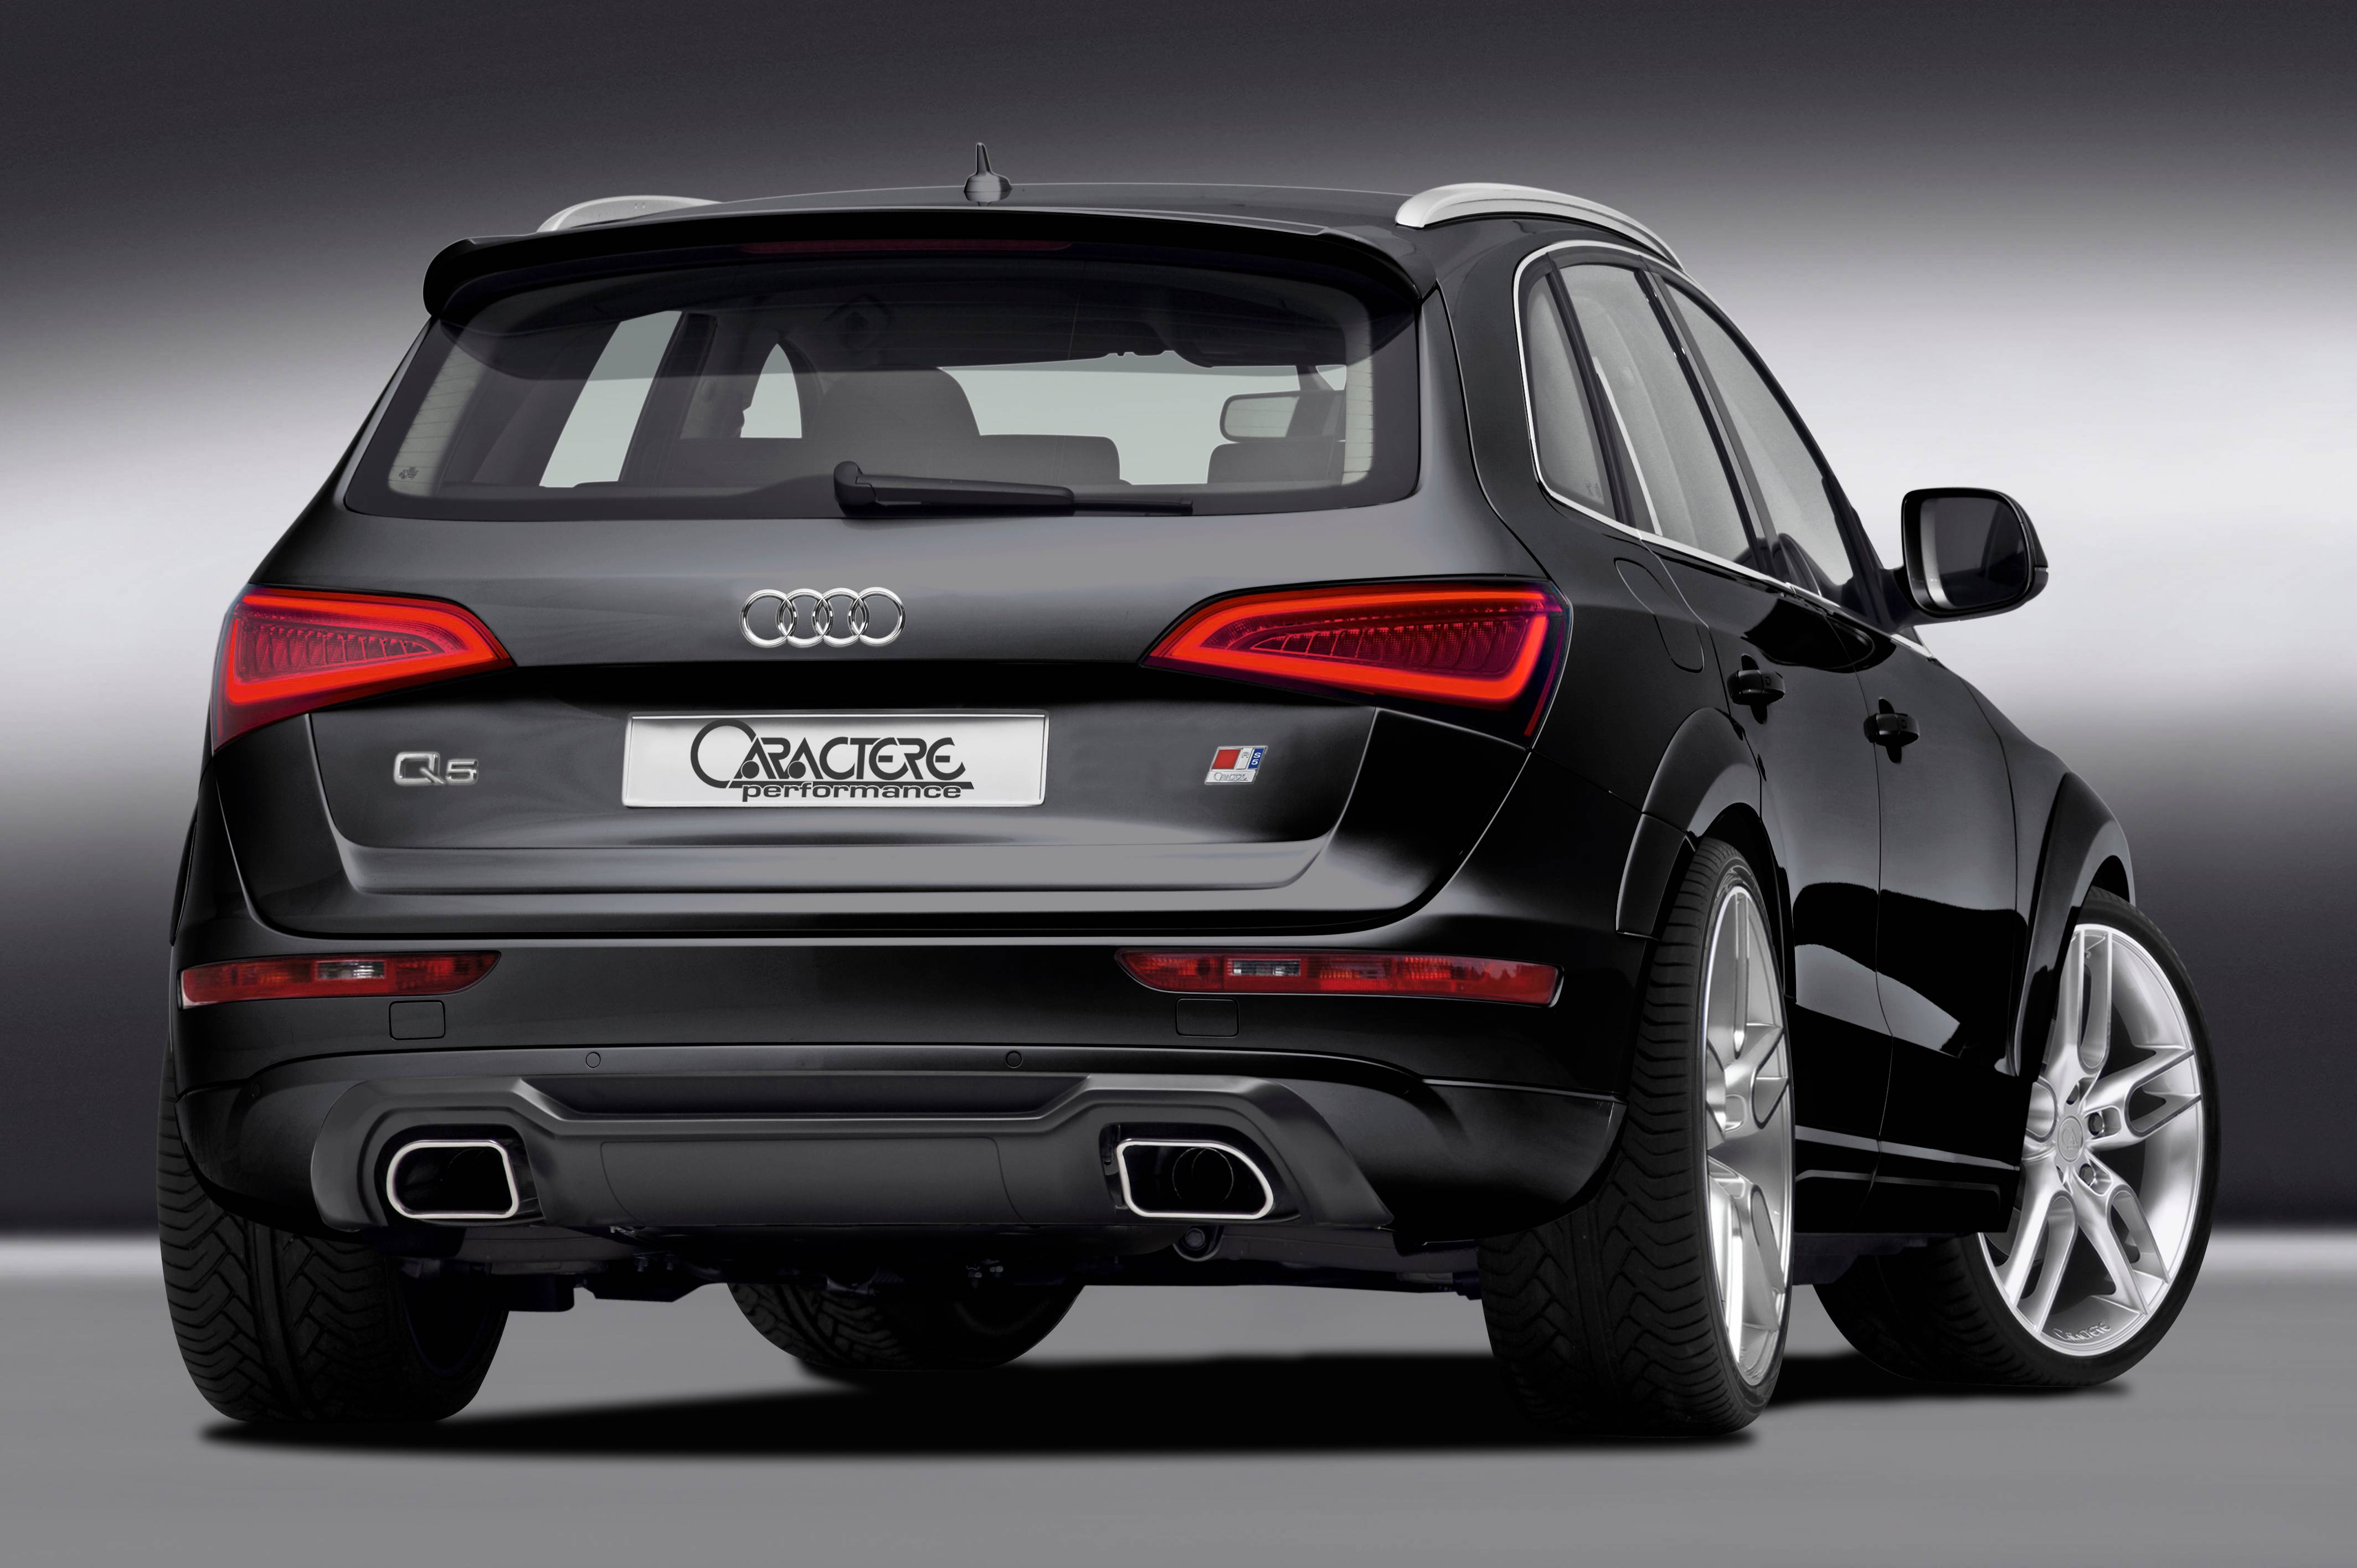 Caractere Rear Diffuser with Caractere Dual Exhaust, fits Audi Q5 B8.0/B8.5 2.0 TDI